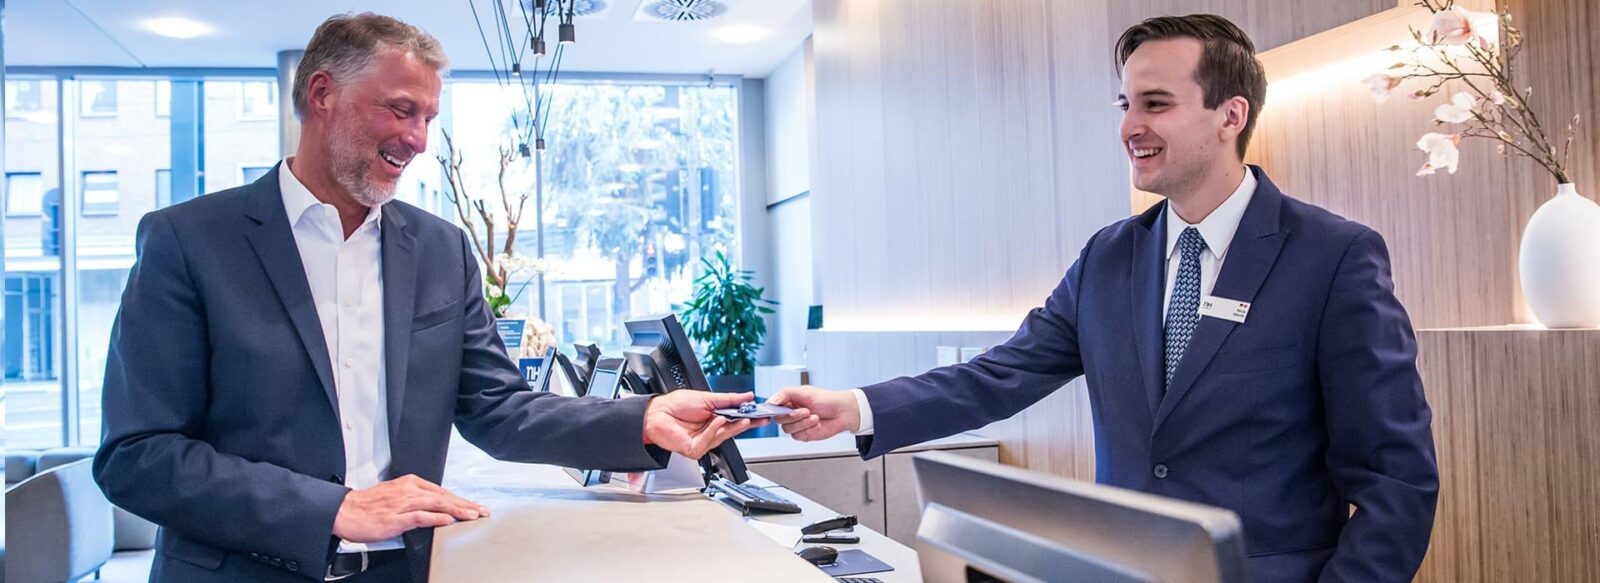 Check In Hotel Hm business travel 1 1 - Ihr Hotel für BAU 2019 in München